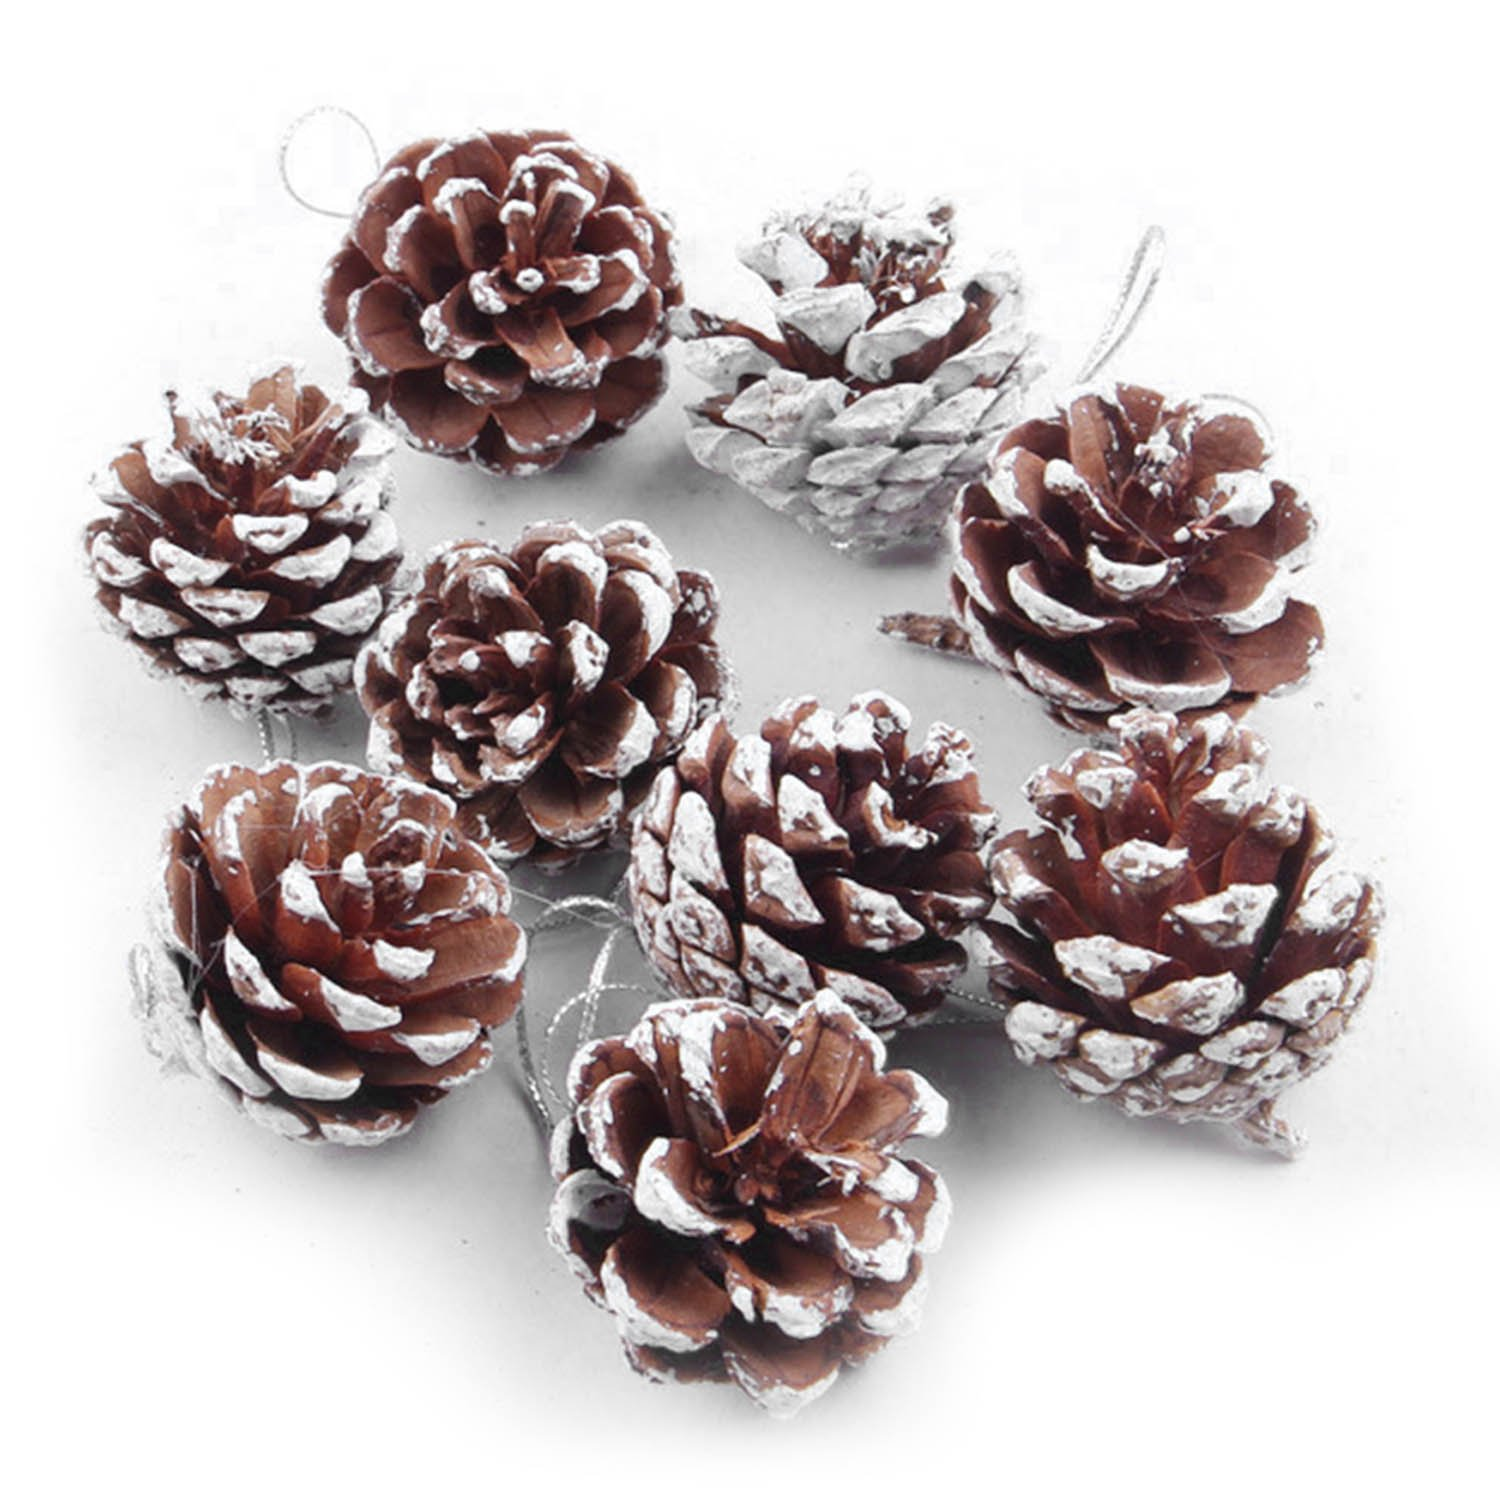 54 PCS Wooden Xmas Christmas Tree Pine Cone Hanging Ornament Holiday Party Home Decor Decoration Supplies Gosear